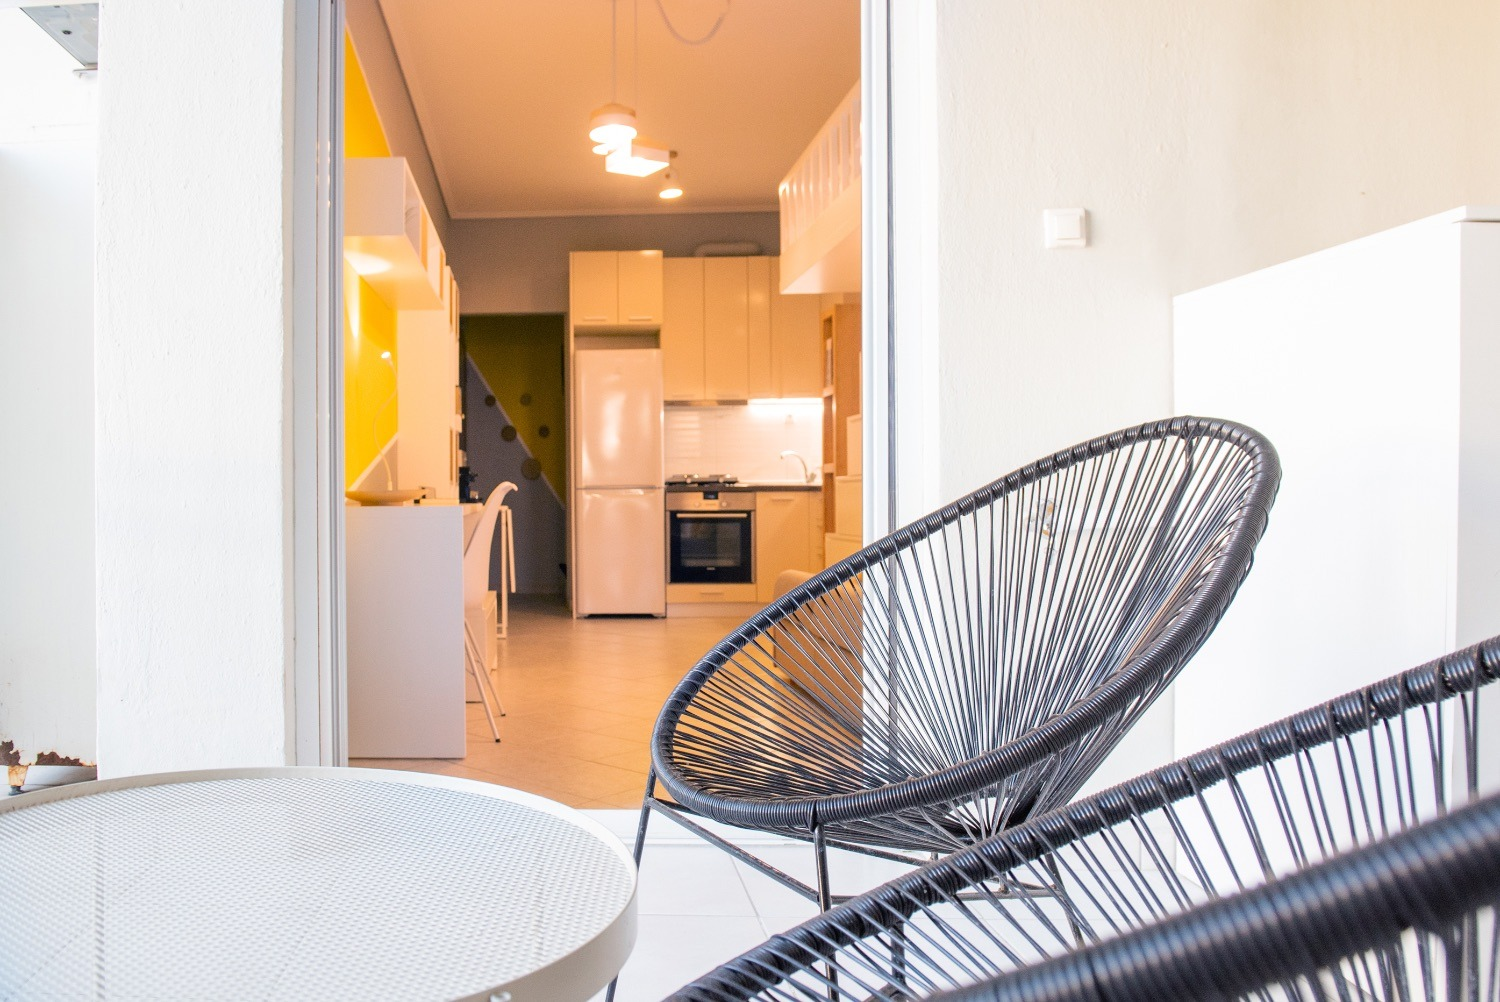 Terrace with view, outdoor furniture & washing machine